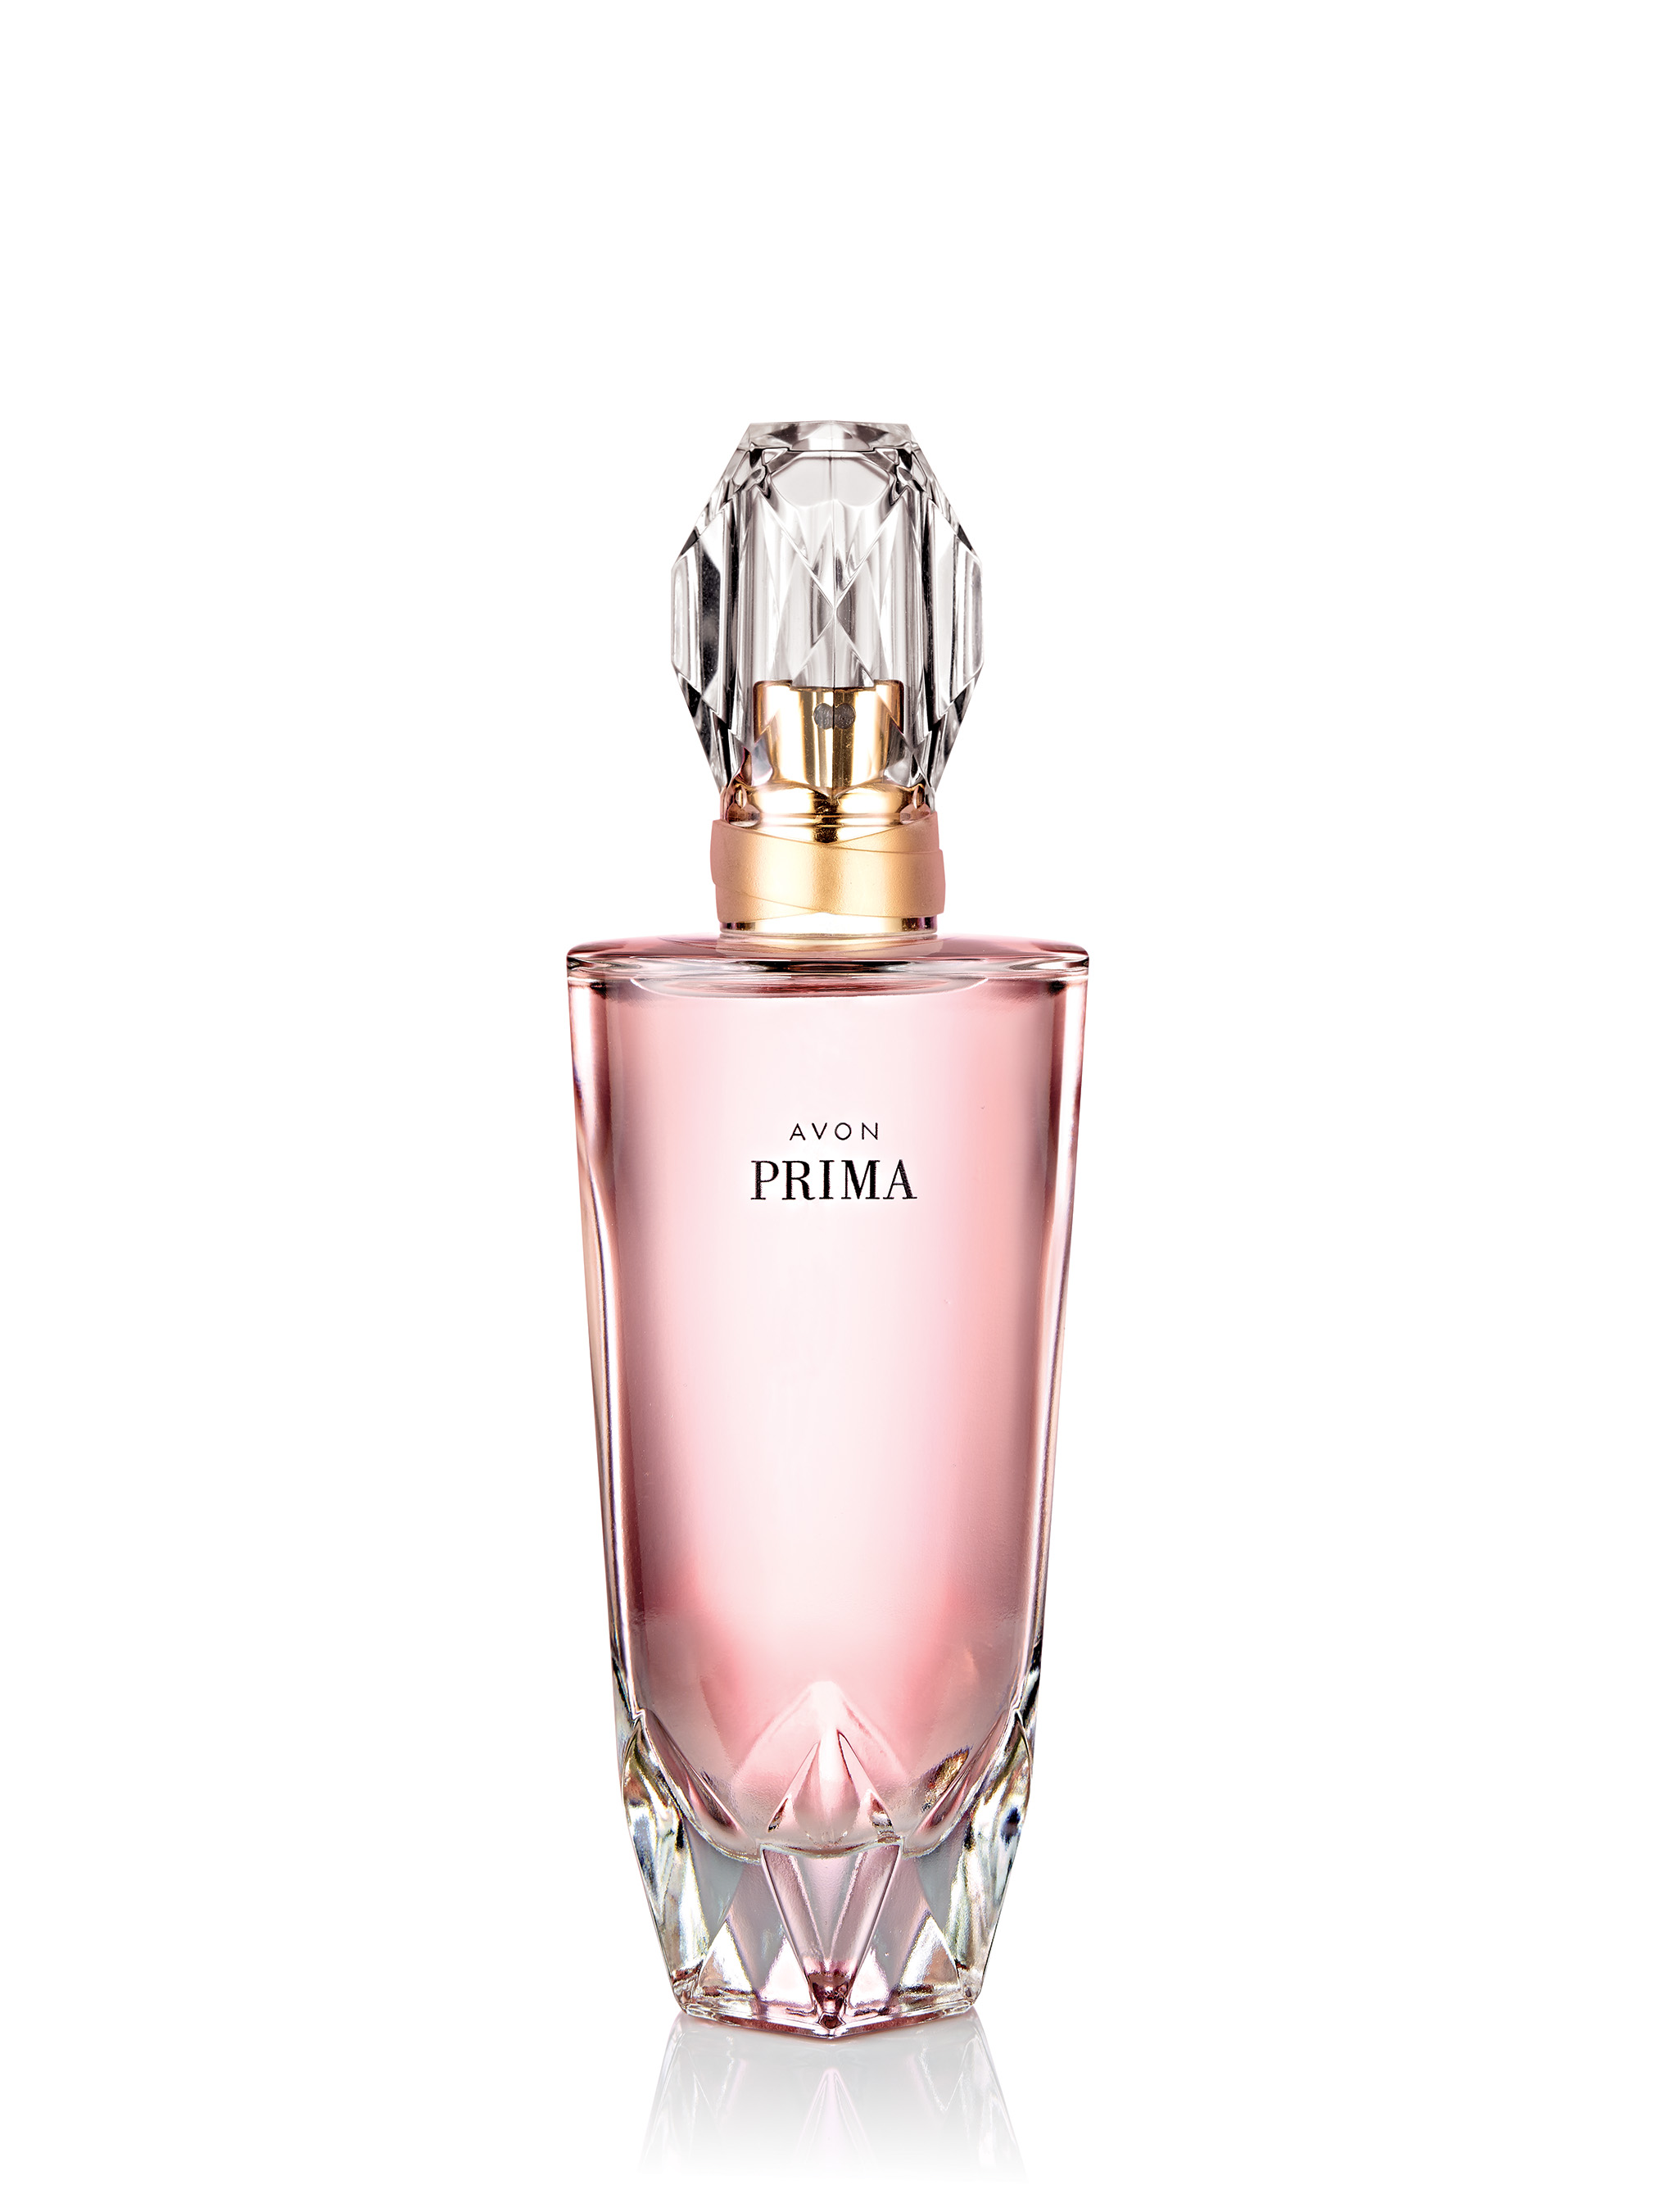 AVON ANNOUNCES BALLET INSPIRED FRAGRANCE PRIMA